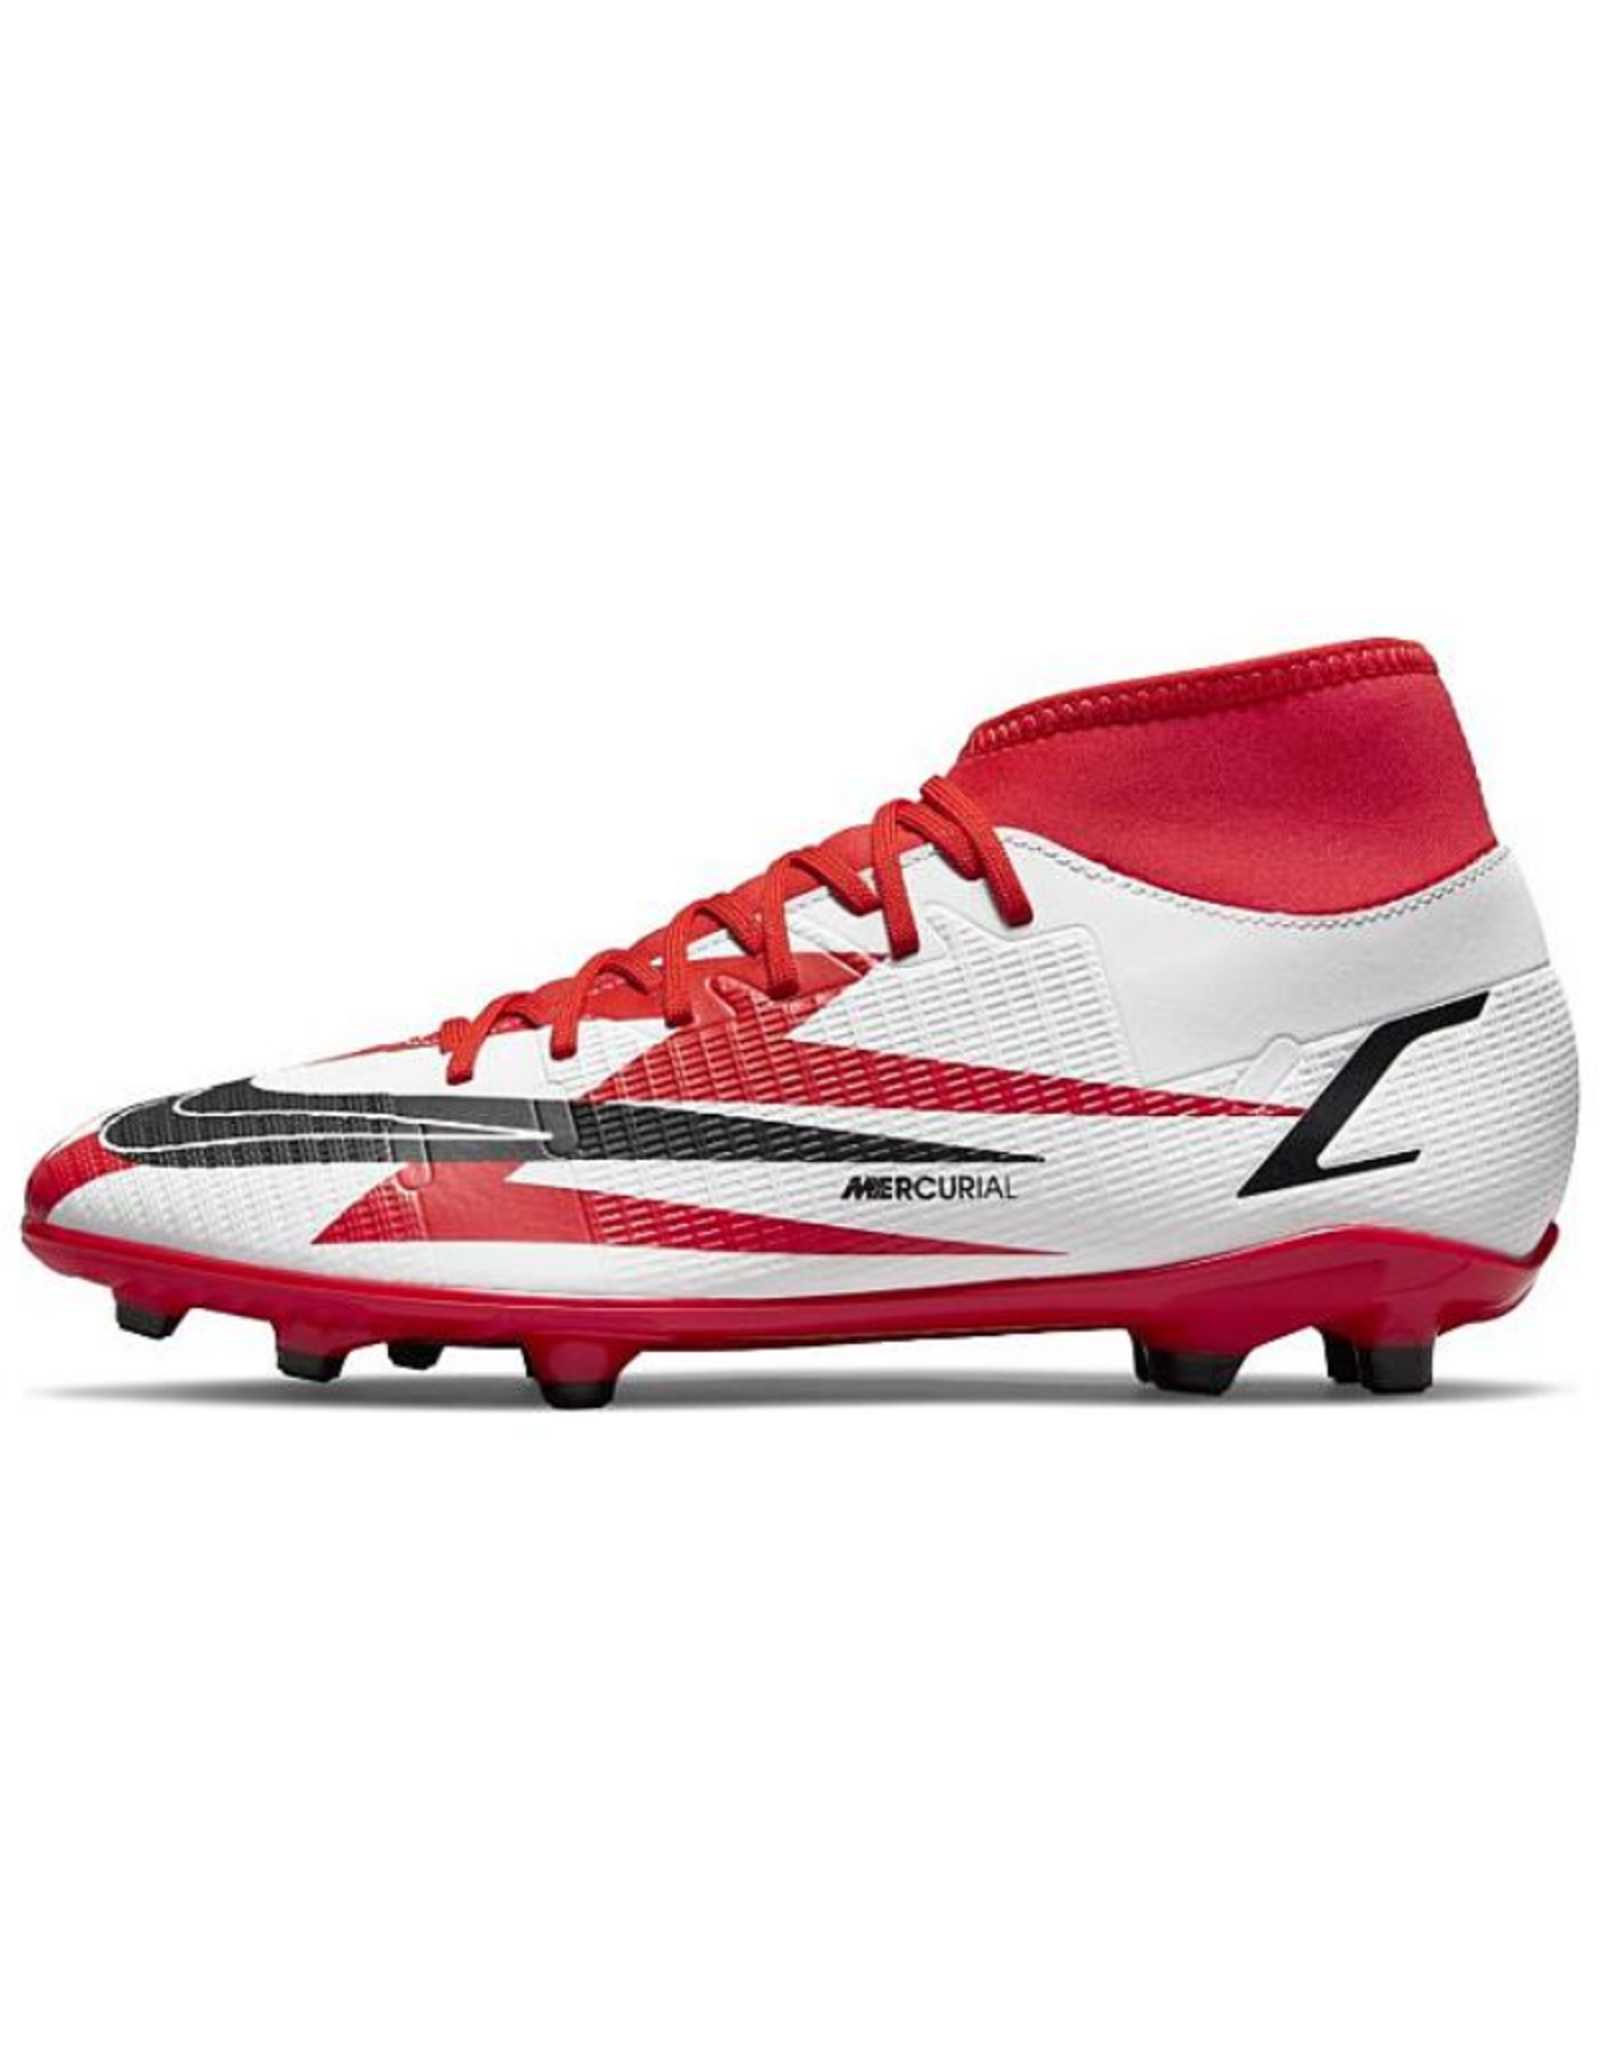 Nike Mercurial Superfly 8 Club CR7 Multi-Ground Soccer Cleat Red/White